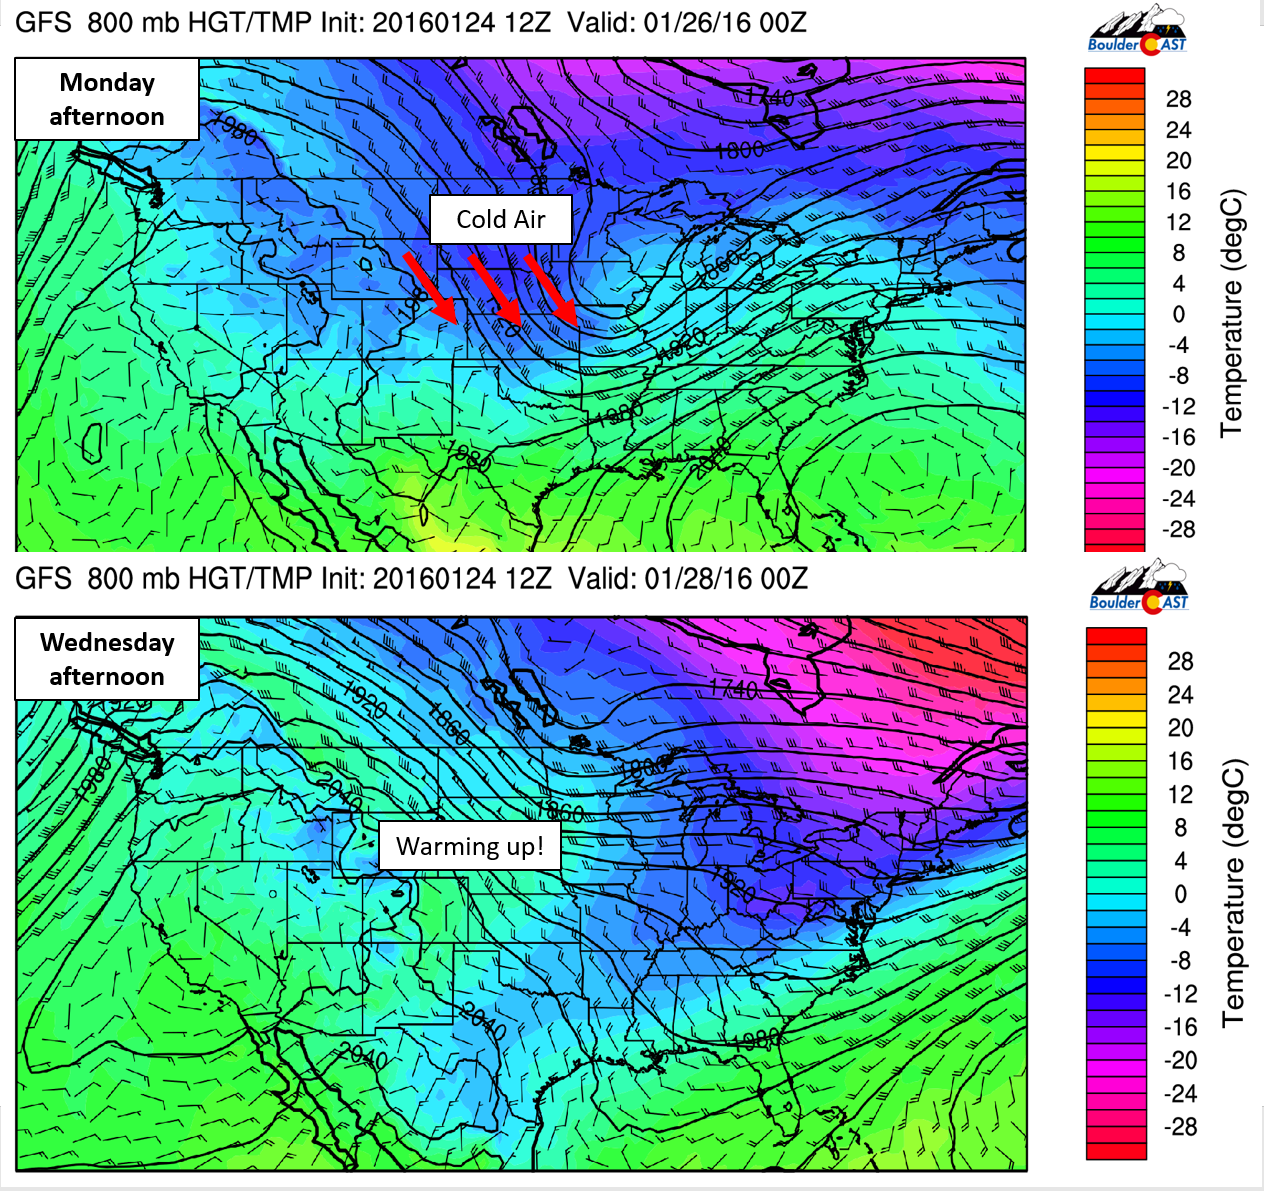 GFS 800mb temperatures for Monday afternoon (top) and Wednesday afternoon (bottom). Notice how the cold air quickly slides eastward, with warmer temps building across eastern Colorado.